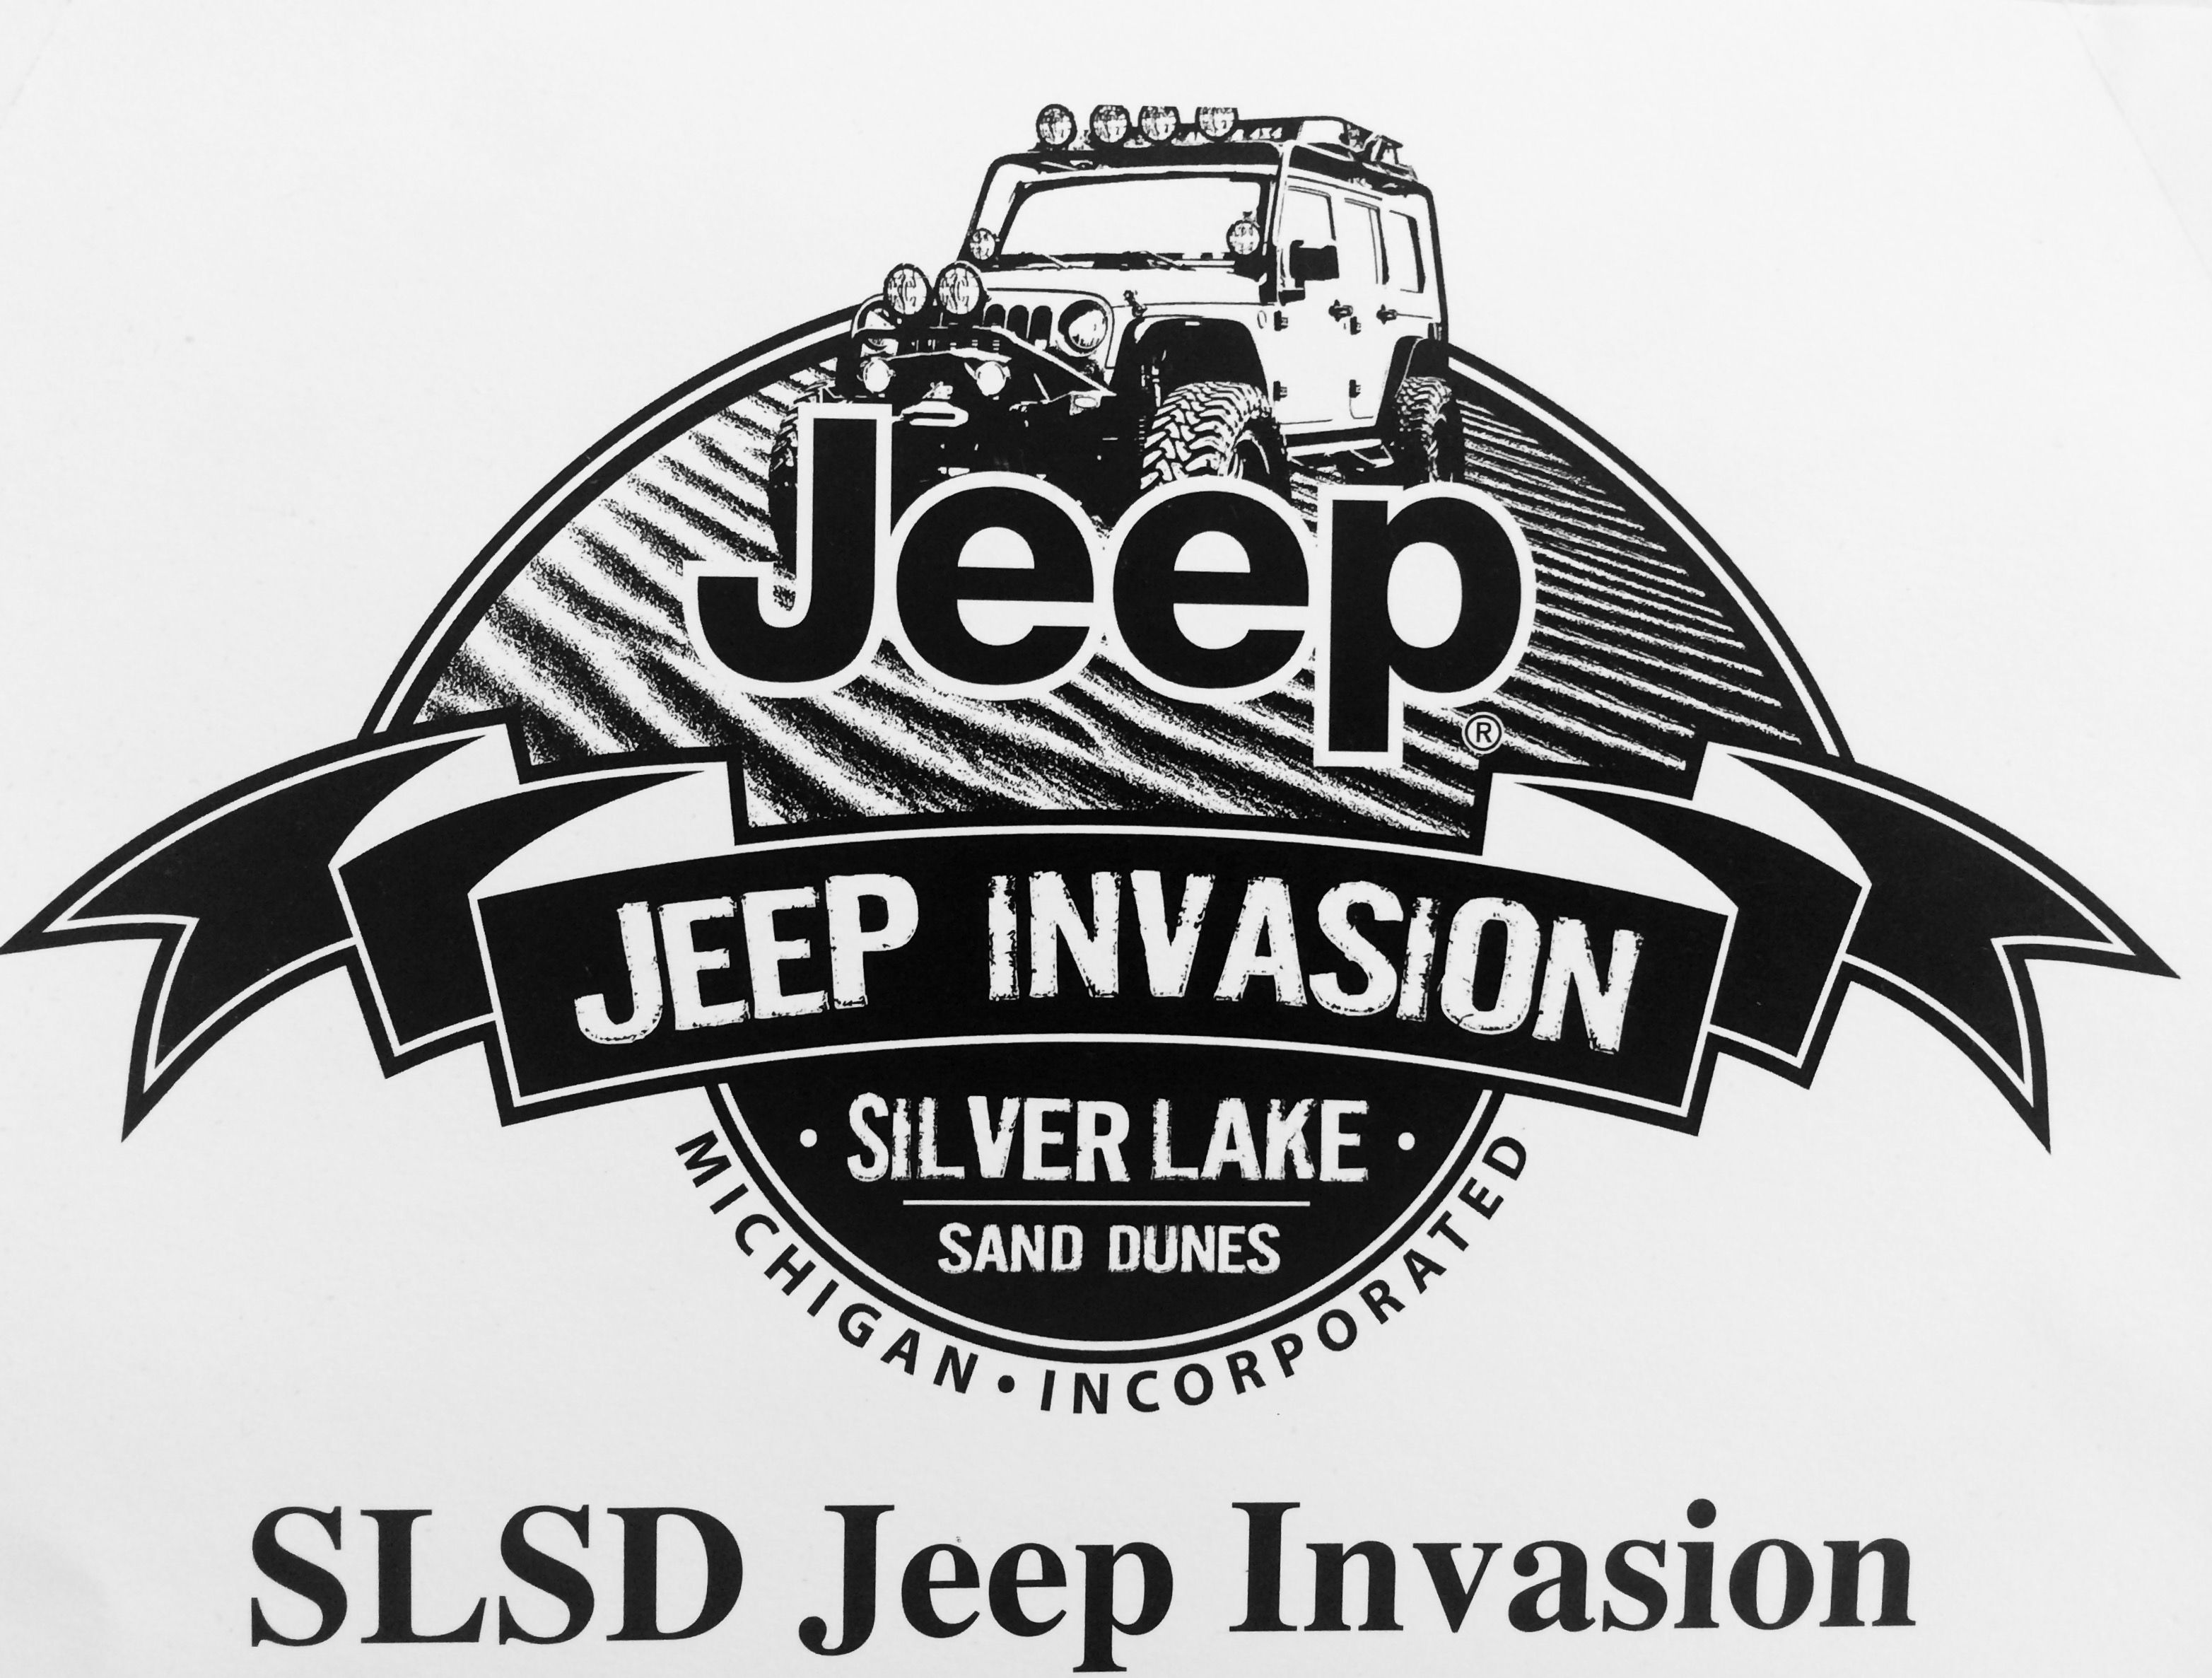 Jeep Invasion This Weekend Silver Lake Sand Dunes Silver Lake Michigan Jeep